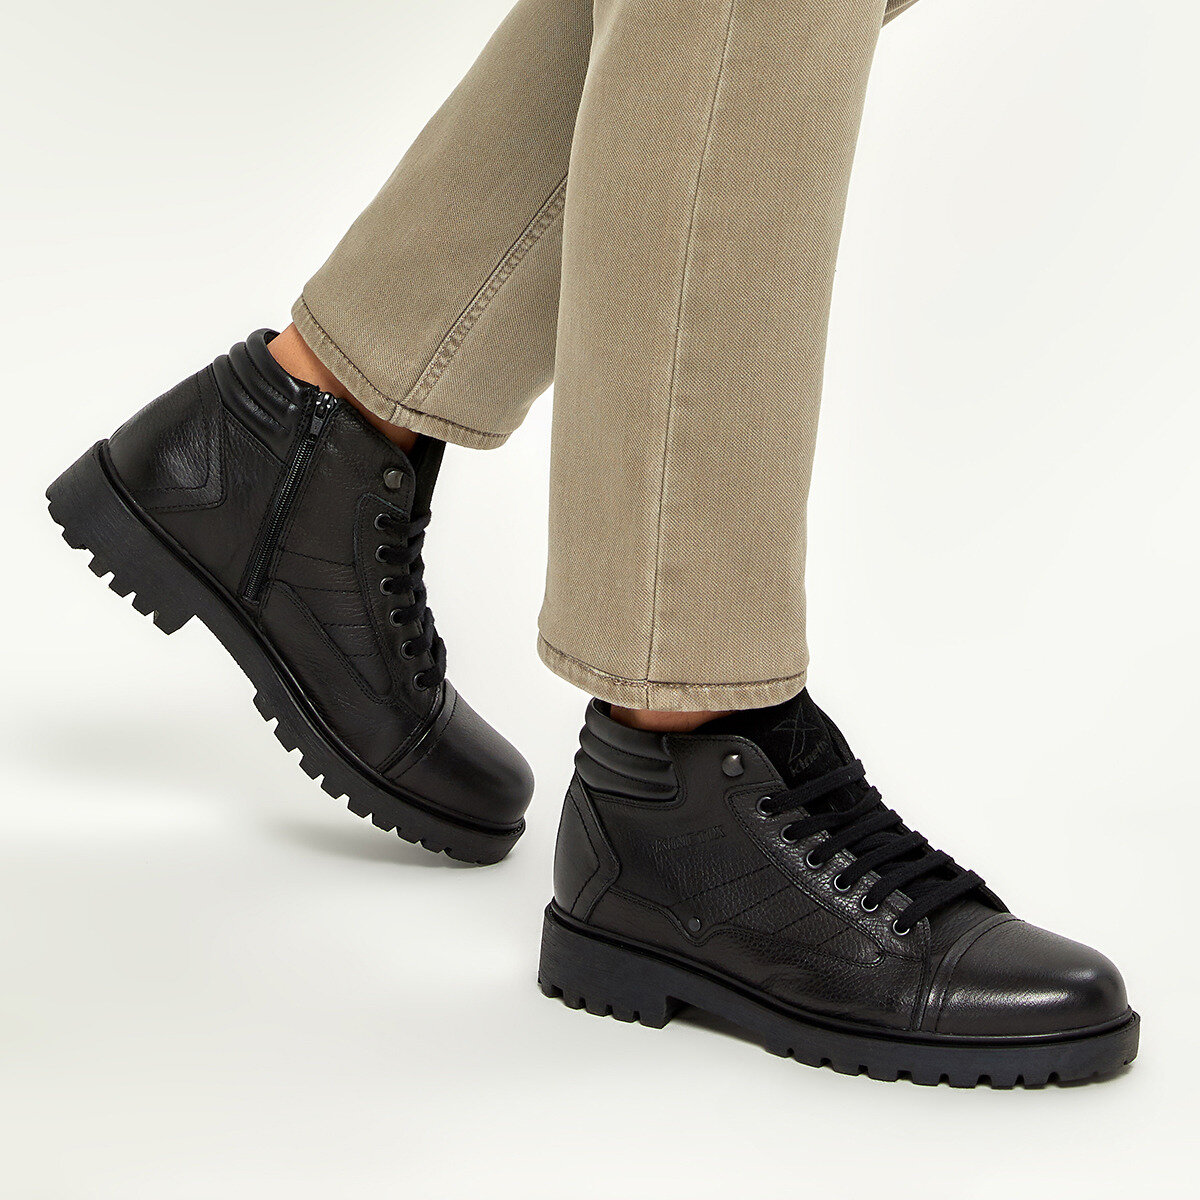 FLO KENTON Black Men Boots KINETIX